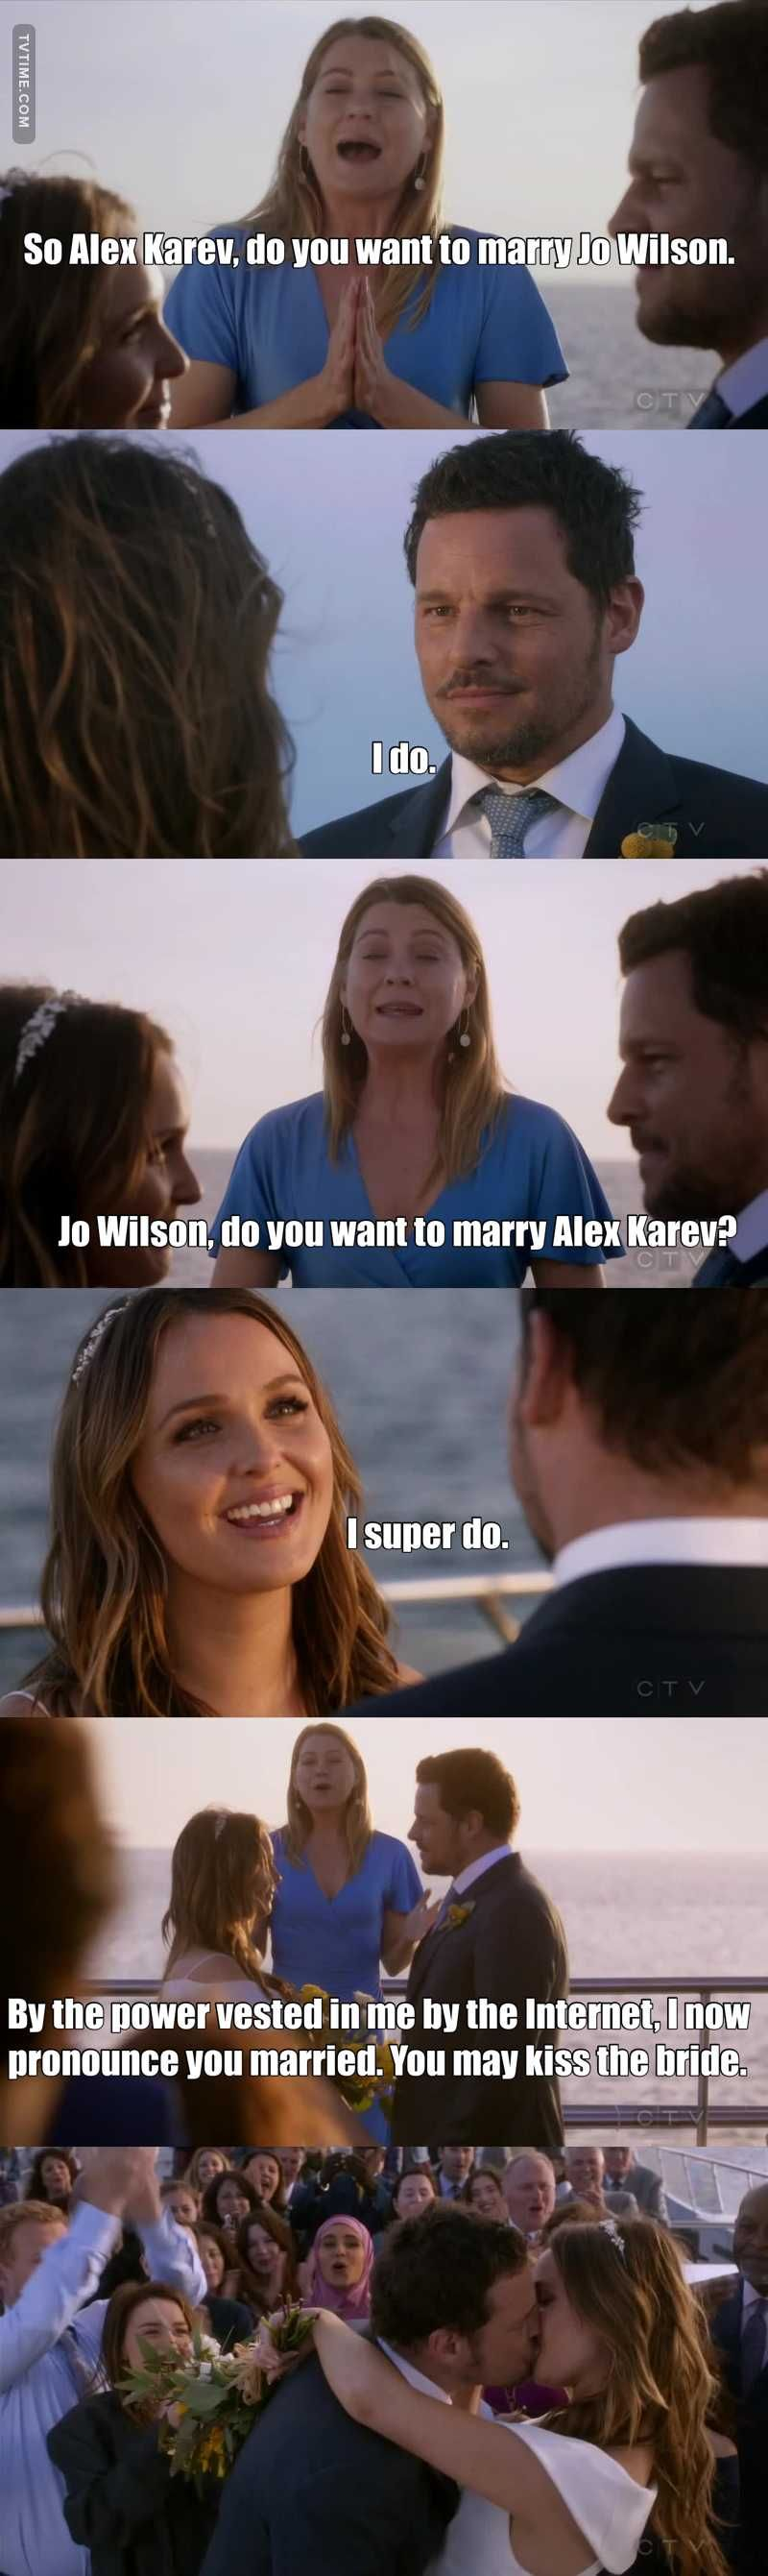 does alex karev marry jo